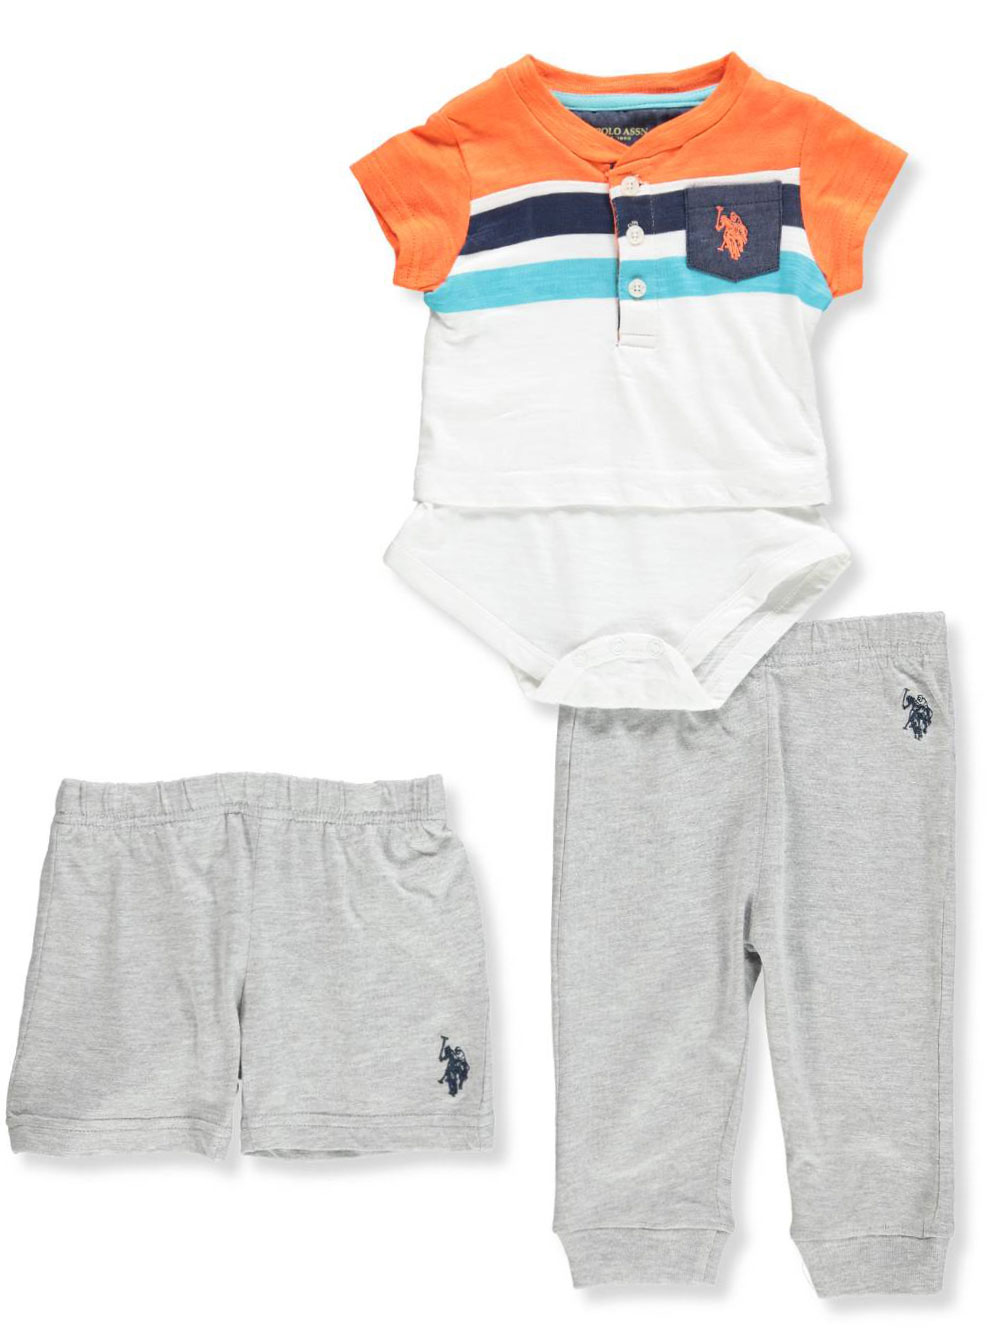 fb02e557f Baby Boys  3-Piece Layette Set by U.S. Polo Assn. in Mango from Cookie s  Kids